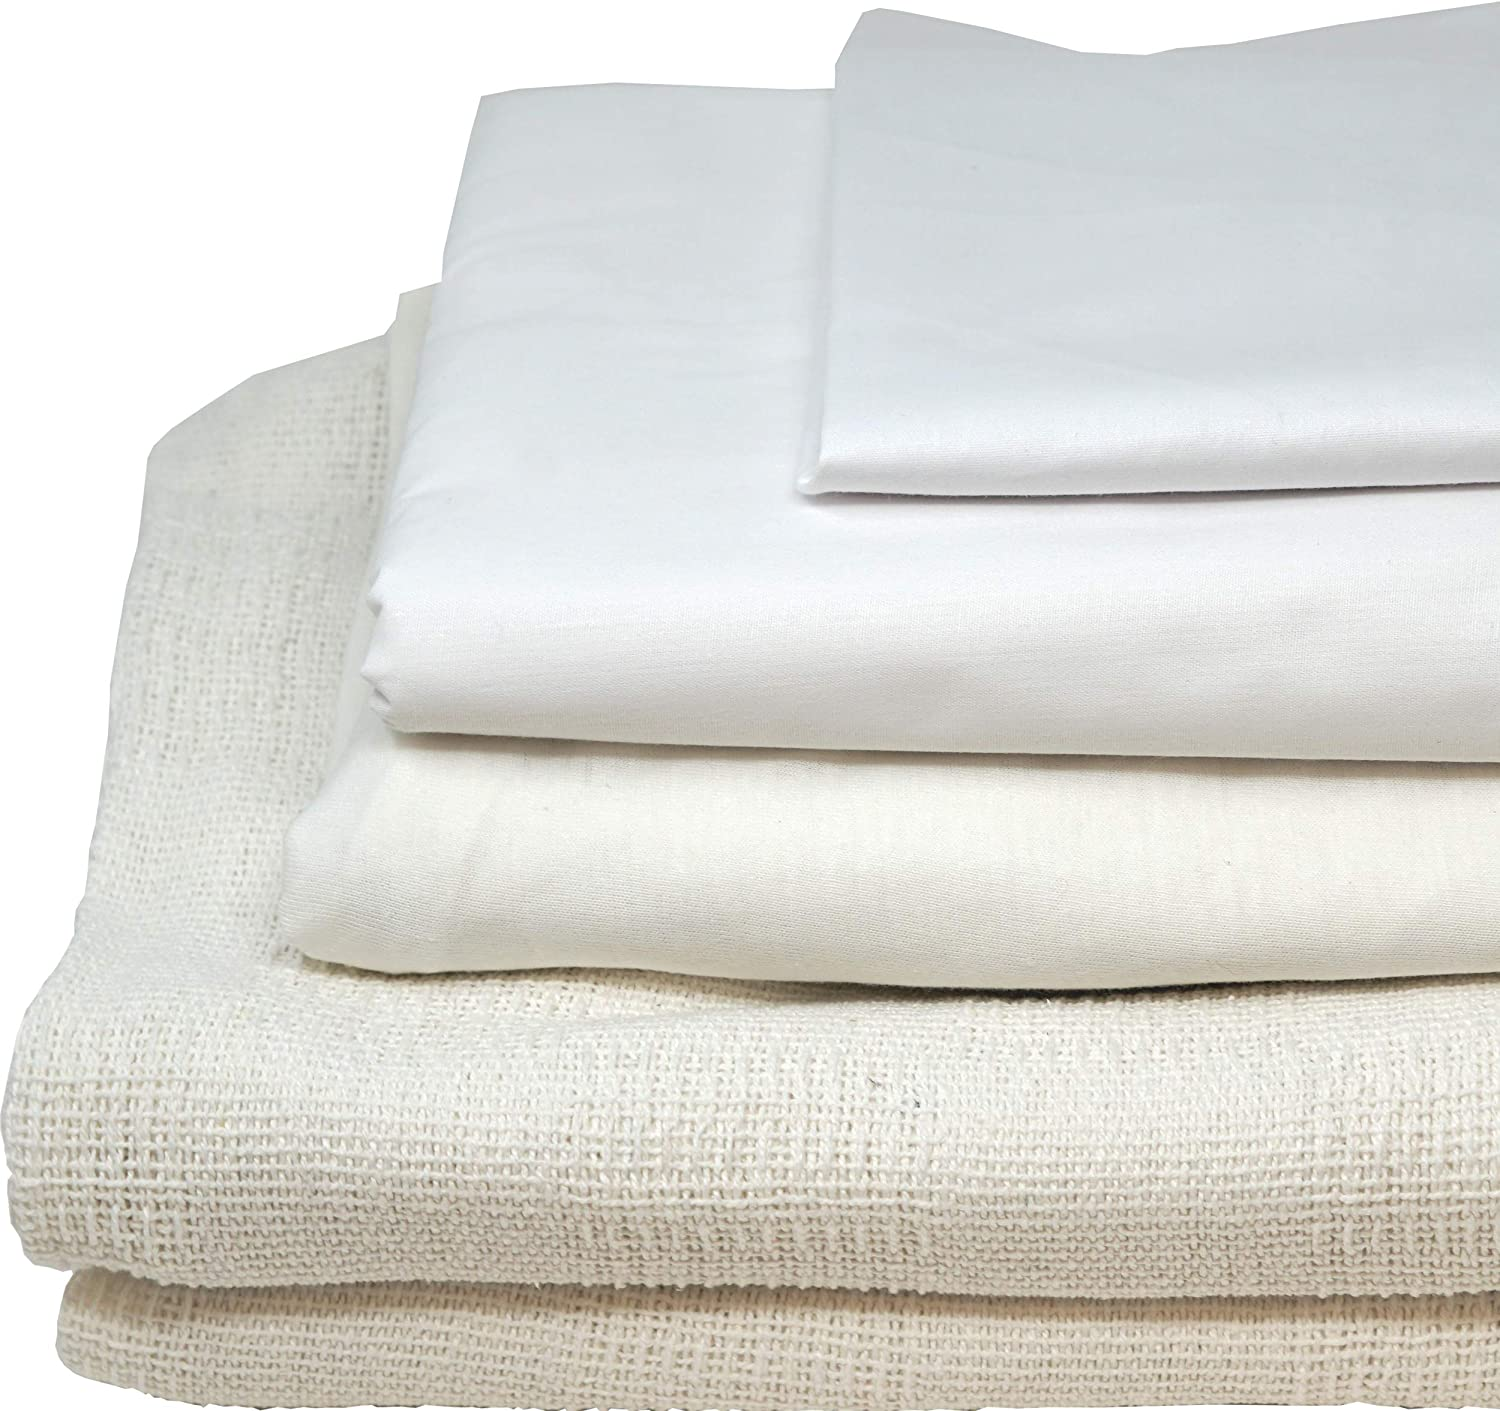 Careoutfit All in One Hospital Bed in a Bag, Top Sheet, Bottom Sheet, Pillow Case and Blanket, White Premium